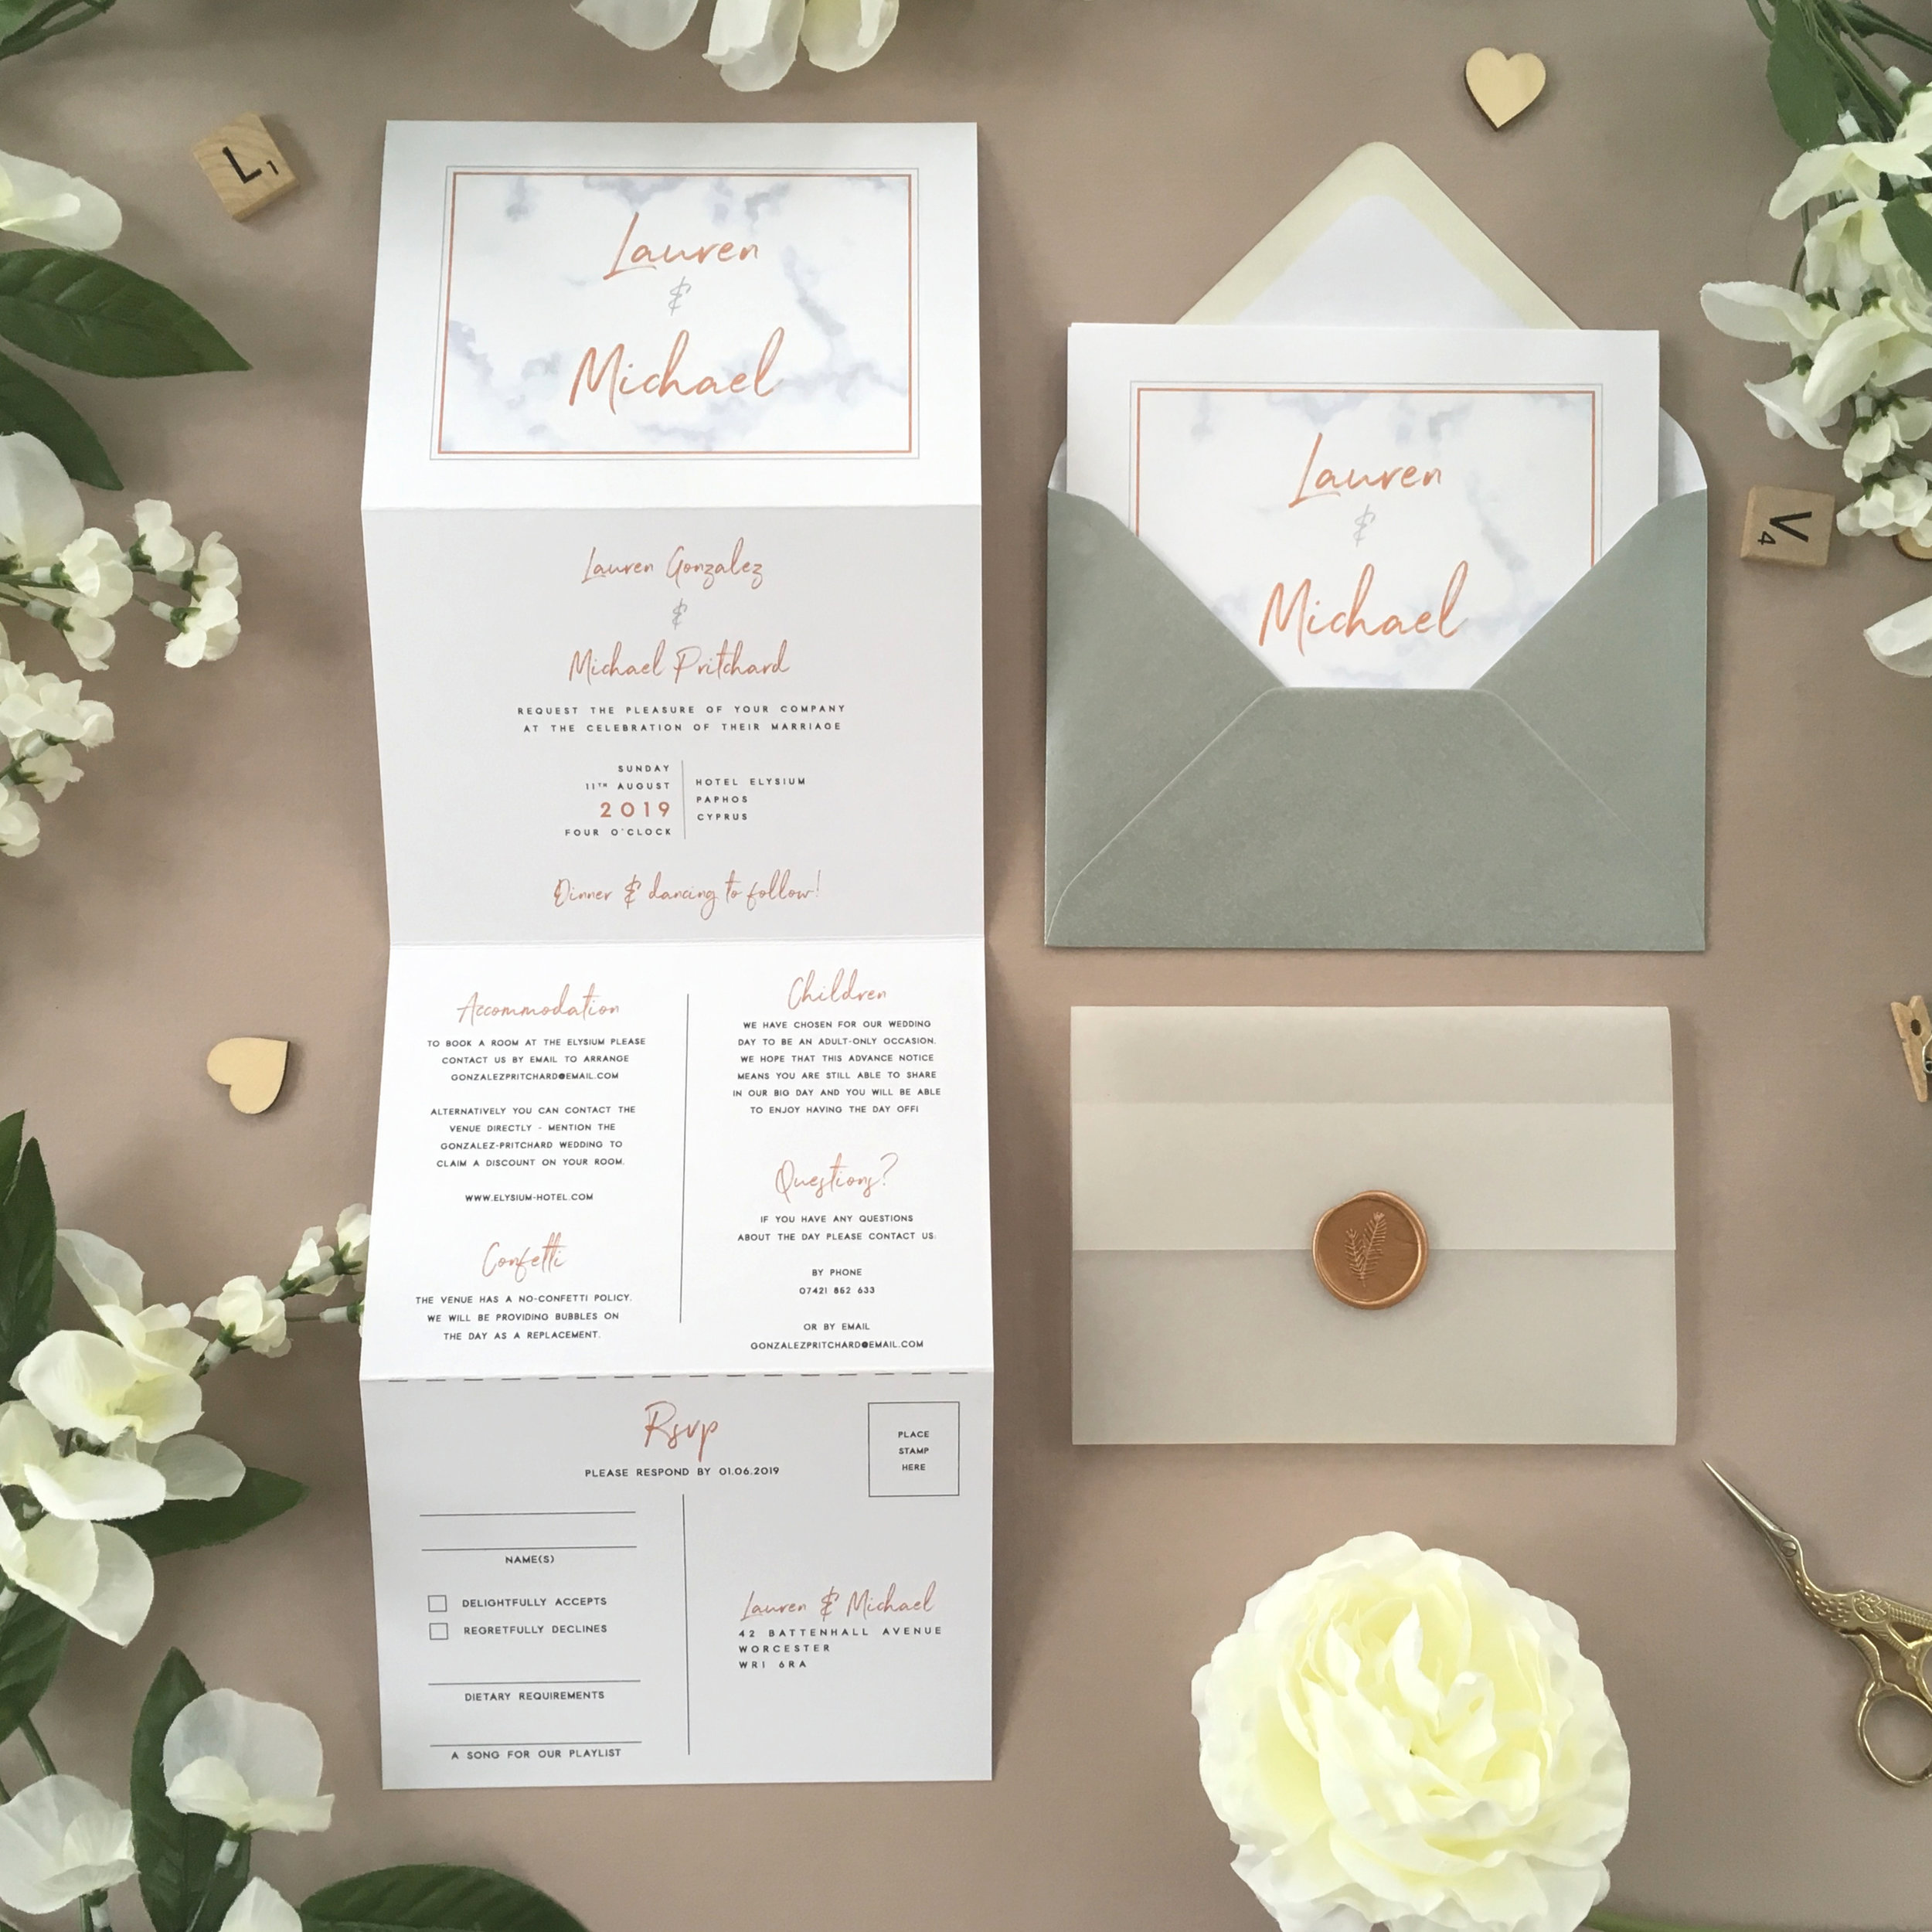 Chiswick - Our Chiswick collection uses a marble effect framed background with handwritten typography for a clean and modern invitation design.Our concertina invitations are a great all-in-one solution, with a detachable RSVP at the bottom of the invitation - all guests need to do is fill in their details, put a stamp in the corner and post!Concertina invitations can be provided on an as-is basis, or can be provided bound with a vellum jacket and timeless wax seal, or tied with ribbon or twine for a lovely hand-finished approach.- Concertina Invitation - from £1.95- Ribbon or Twine - £0.40- Vellum Jacket - £0.40- Wax Seal - £0.85 (Custom engraving also available)White envelope provided as standard with coloured upgrade available.